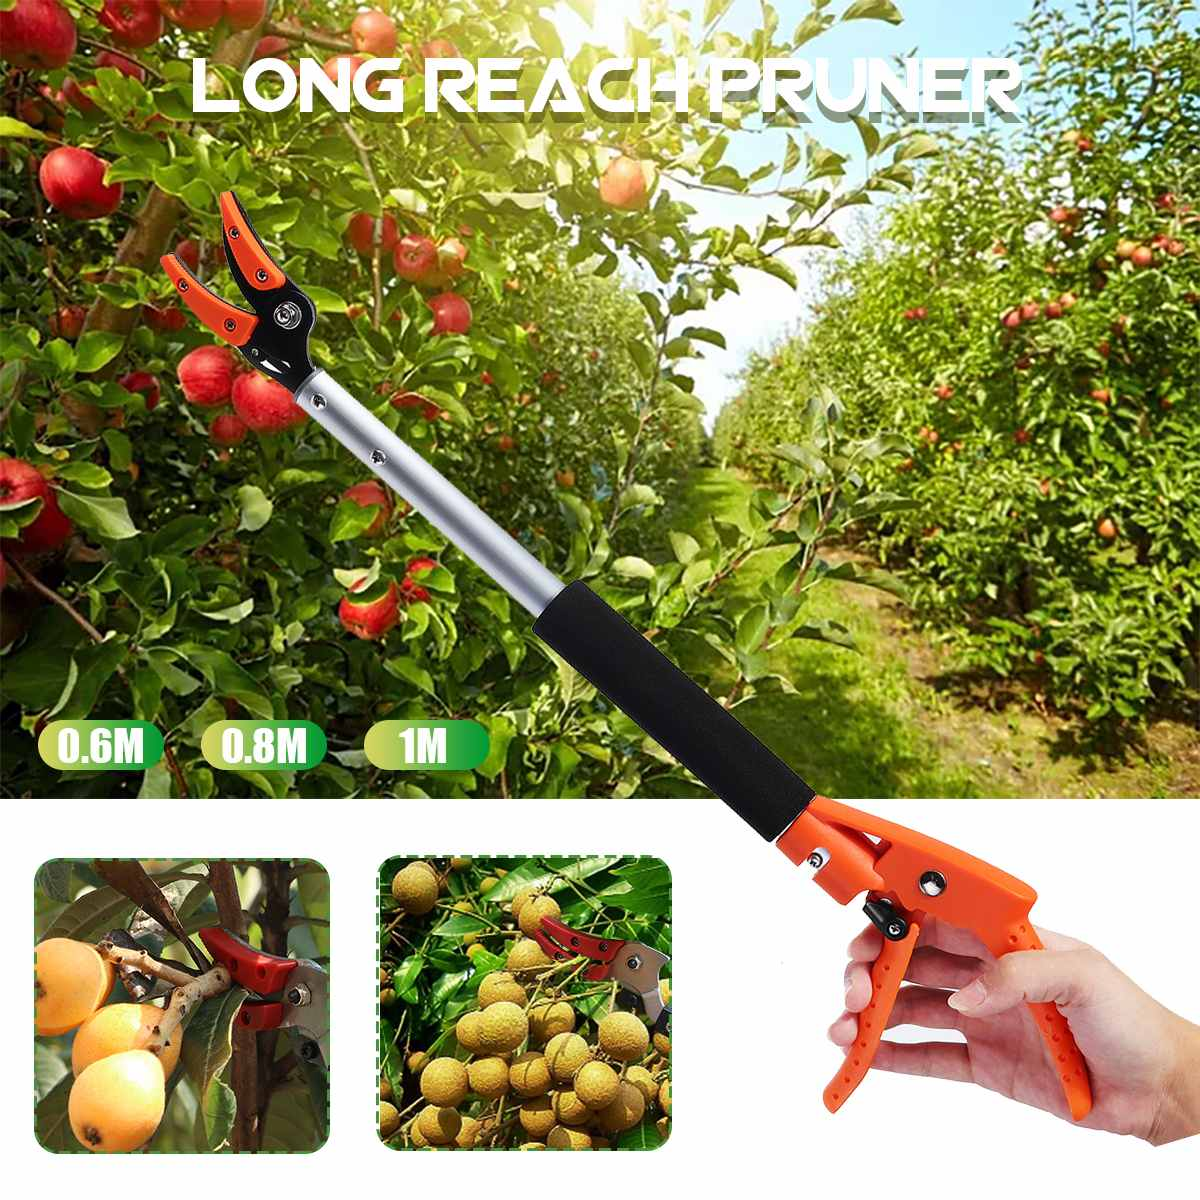 0.6-2M Extra Long Telescopic Pruning and Hold Bypass Pruner Max Cutting 1/2 inch Fruit Picker Tree Cutter Garden Supplies